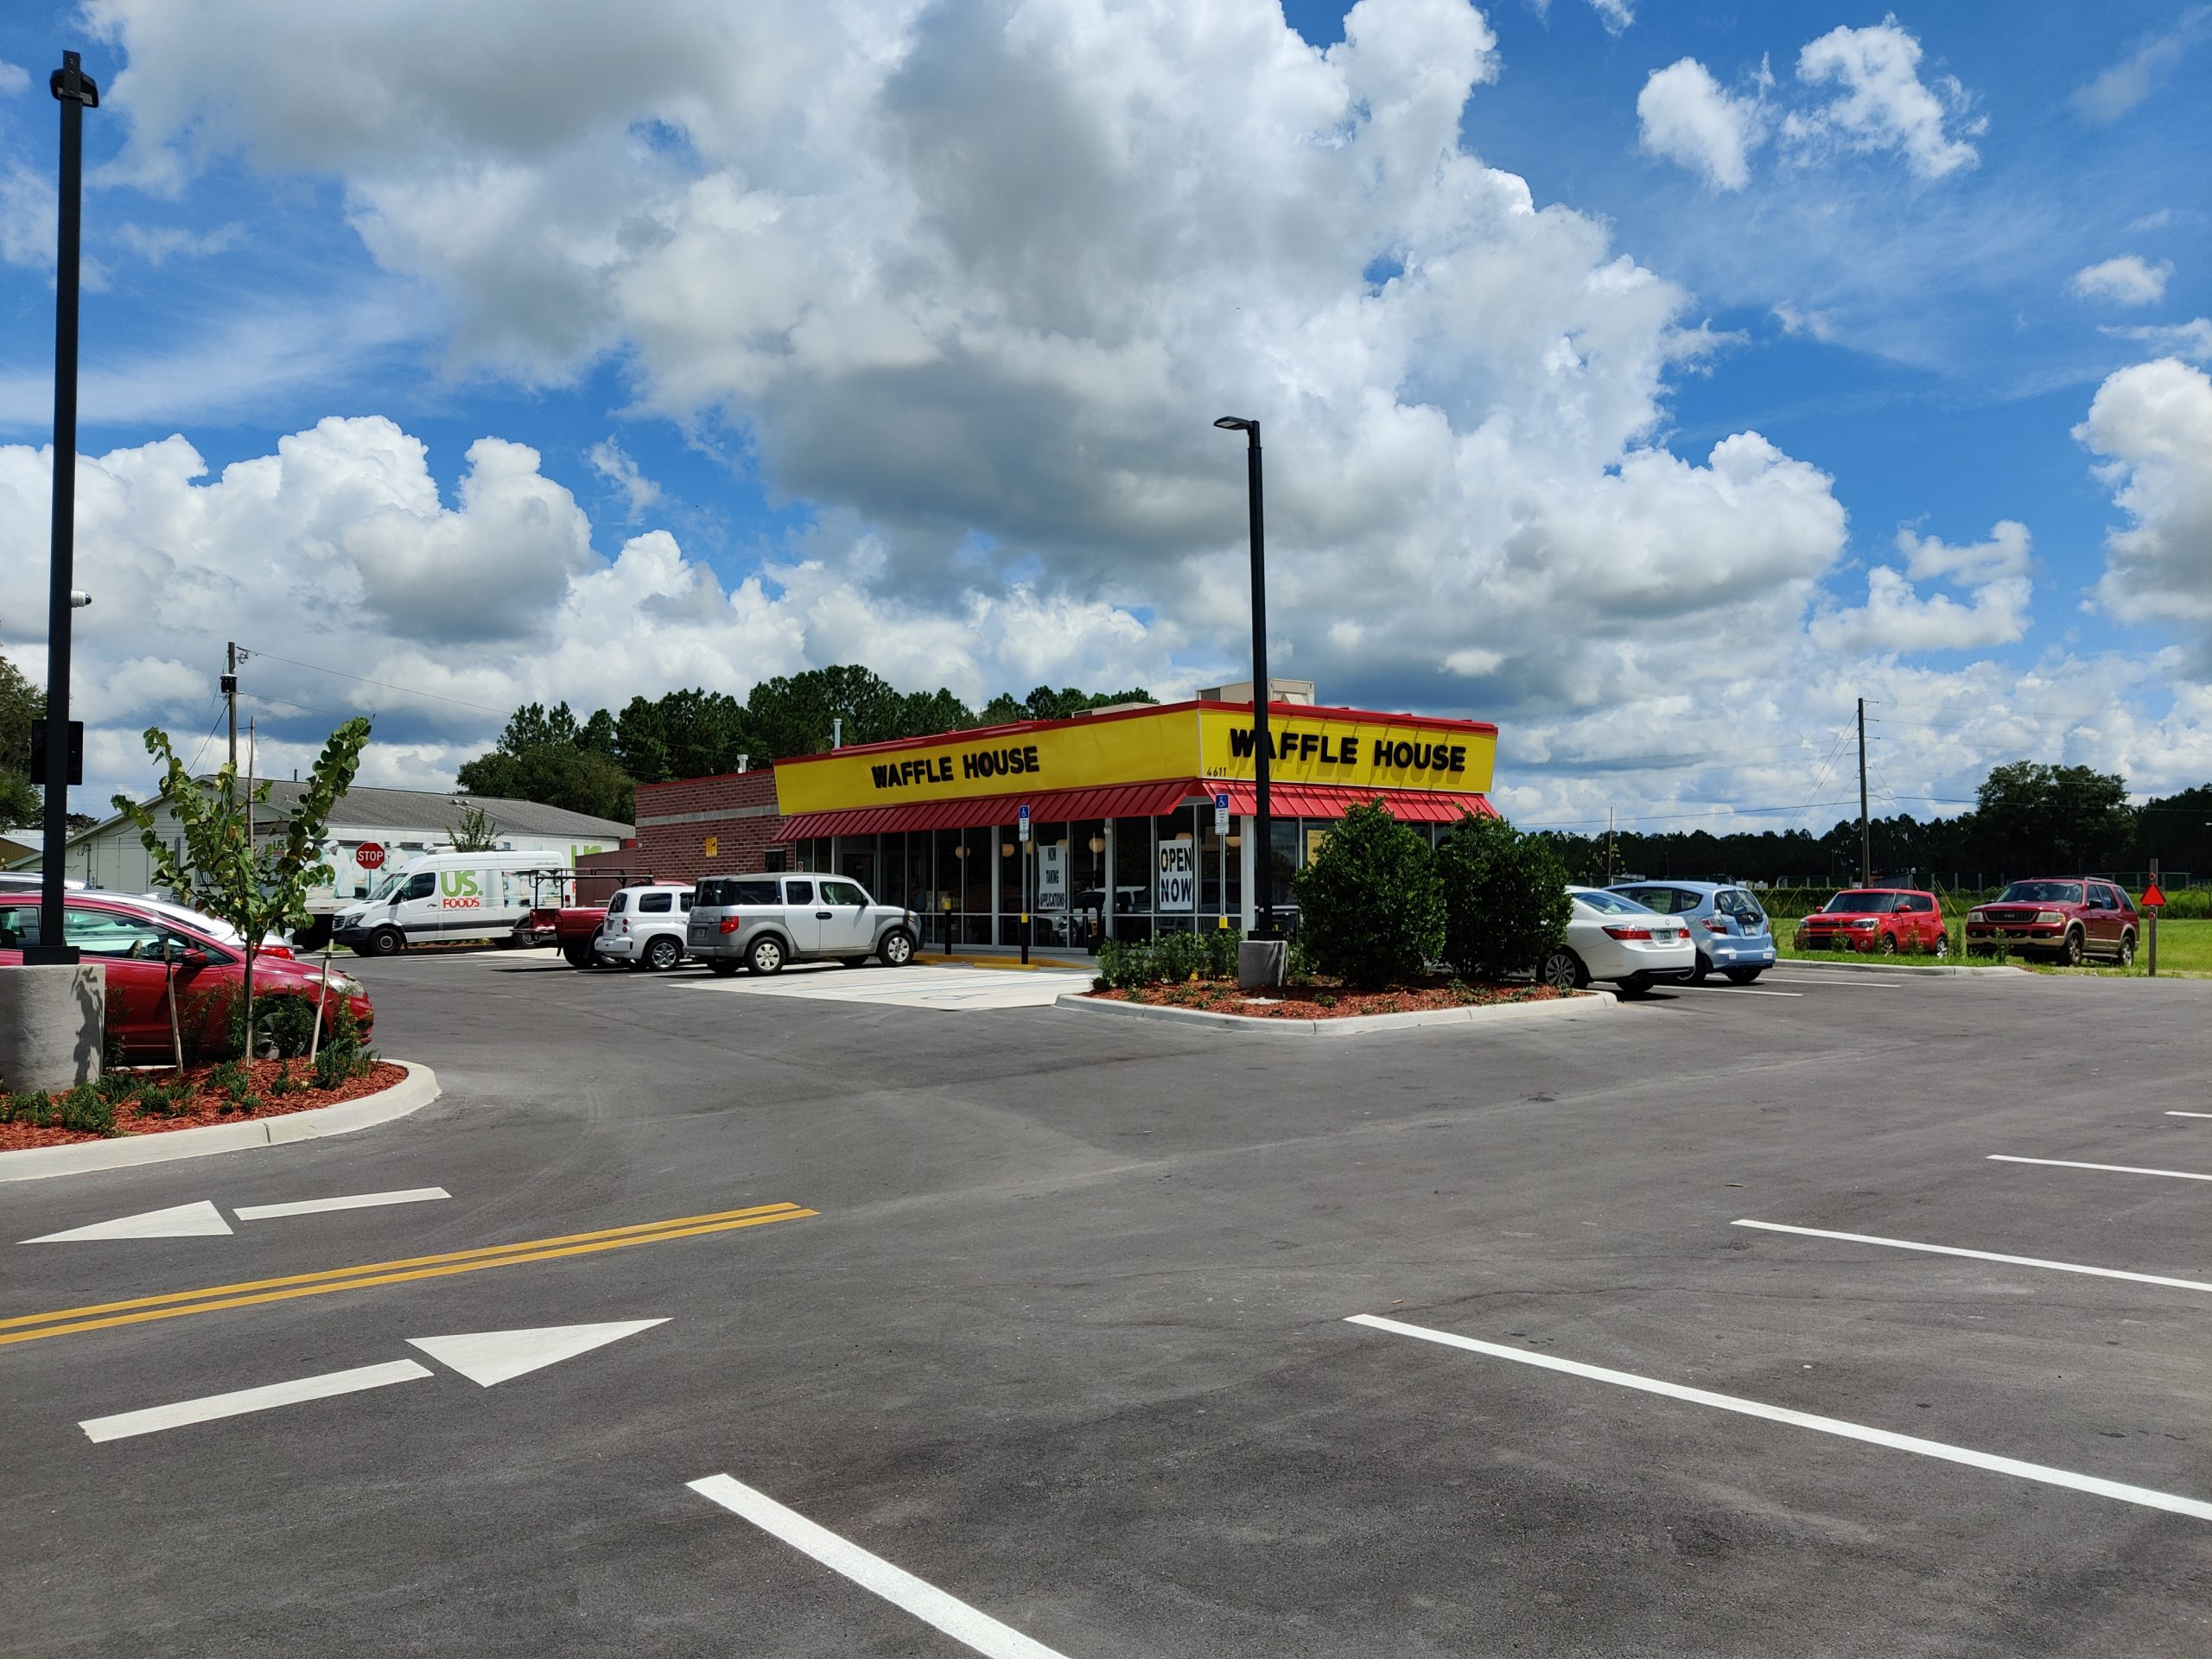 09-09-2020 Waffle House Opens in Shores Photo 1